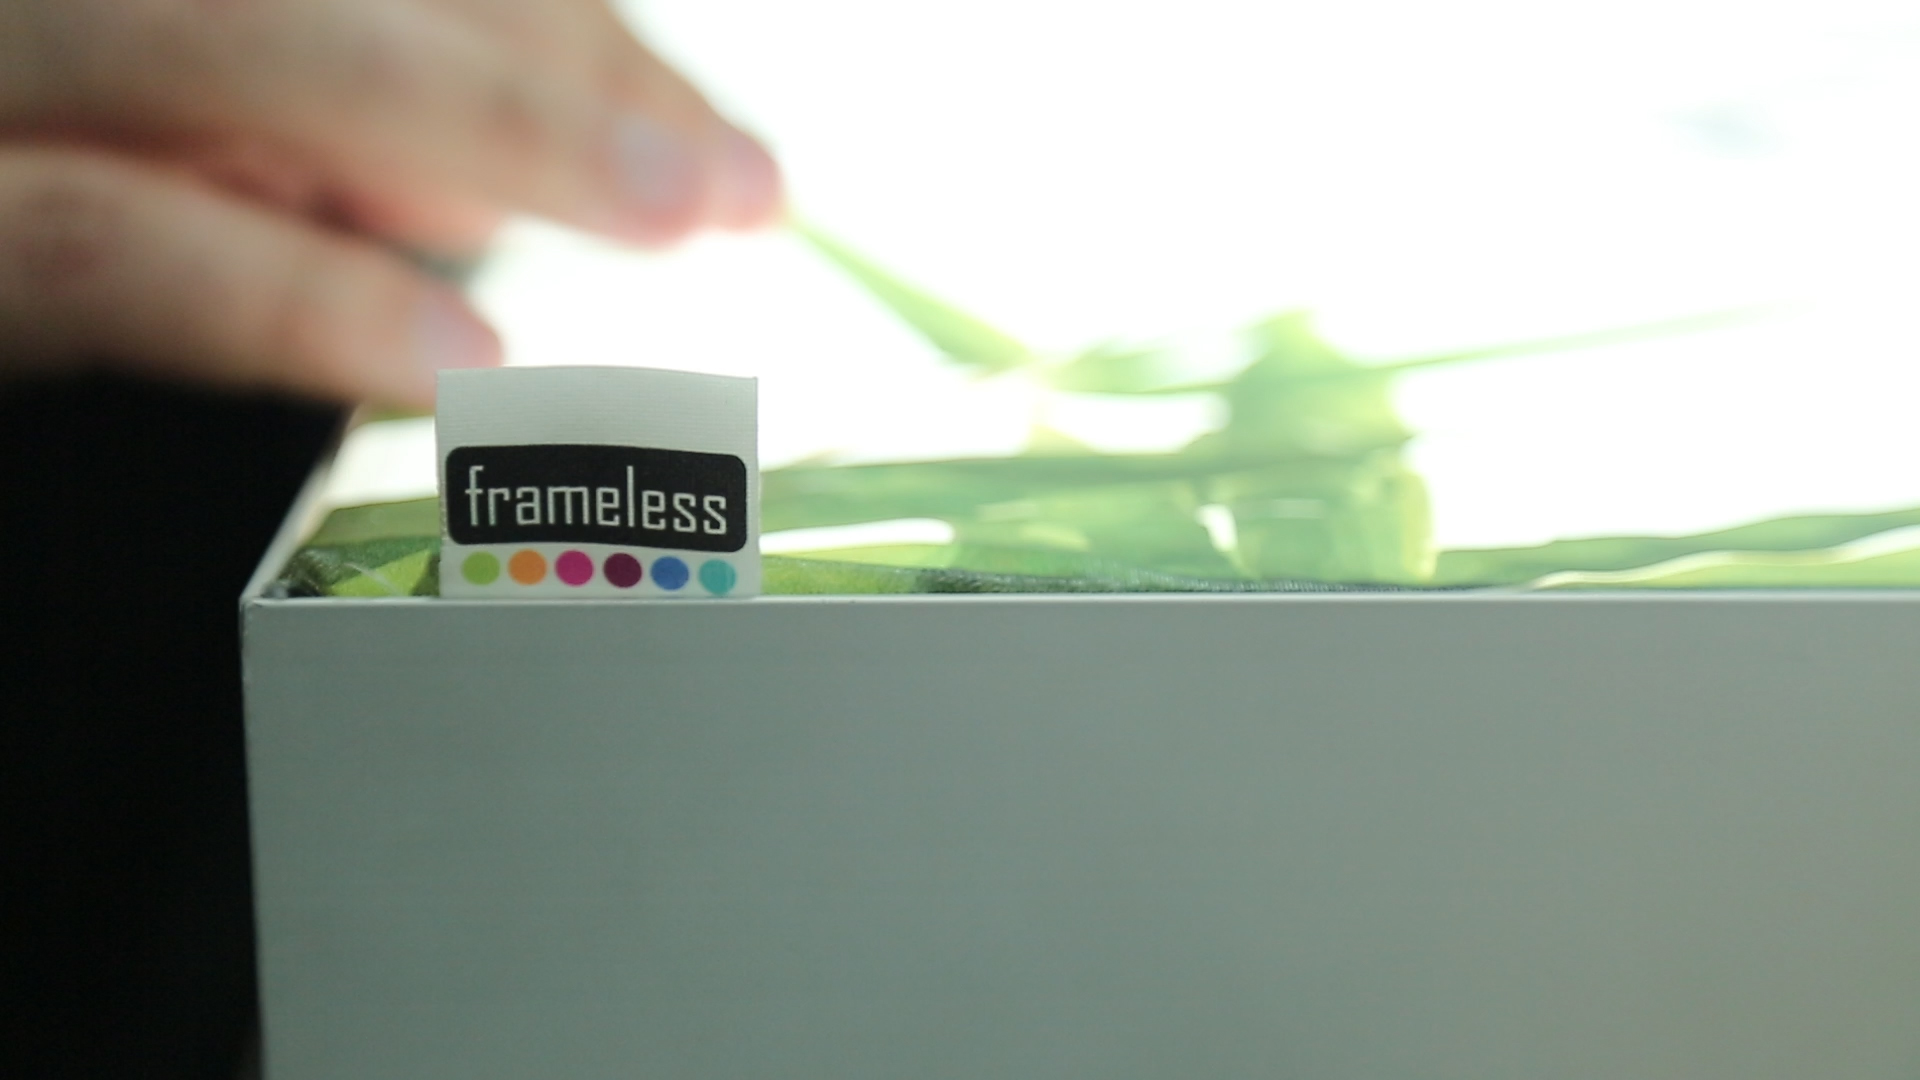 Frameless® Lightbox - Frameless® Lightboxes can be fabricated in virtually any size, the bigger the better.